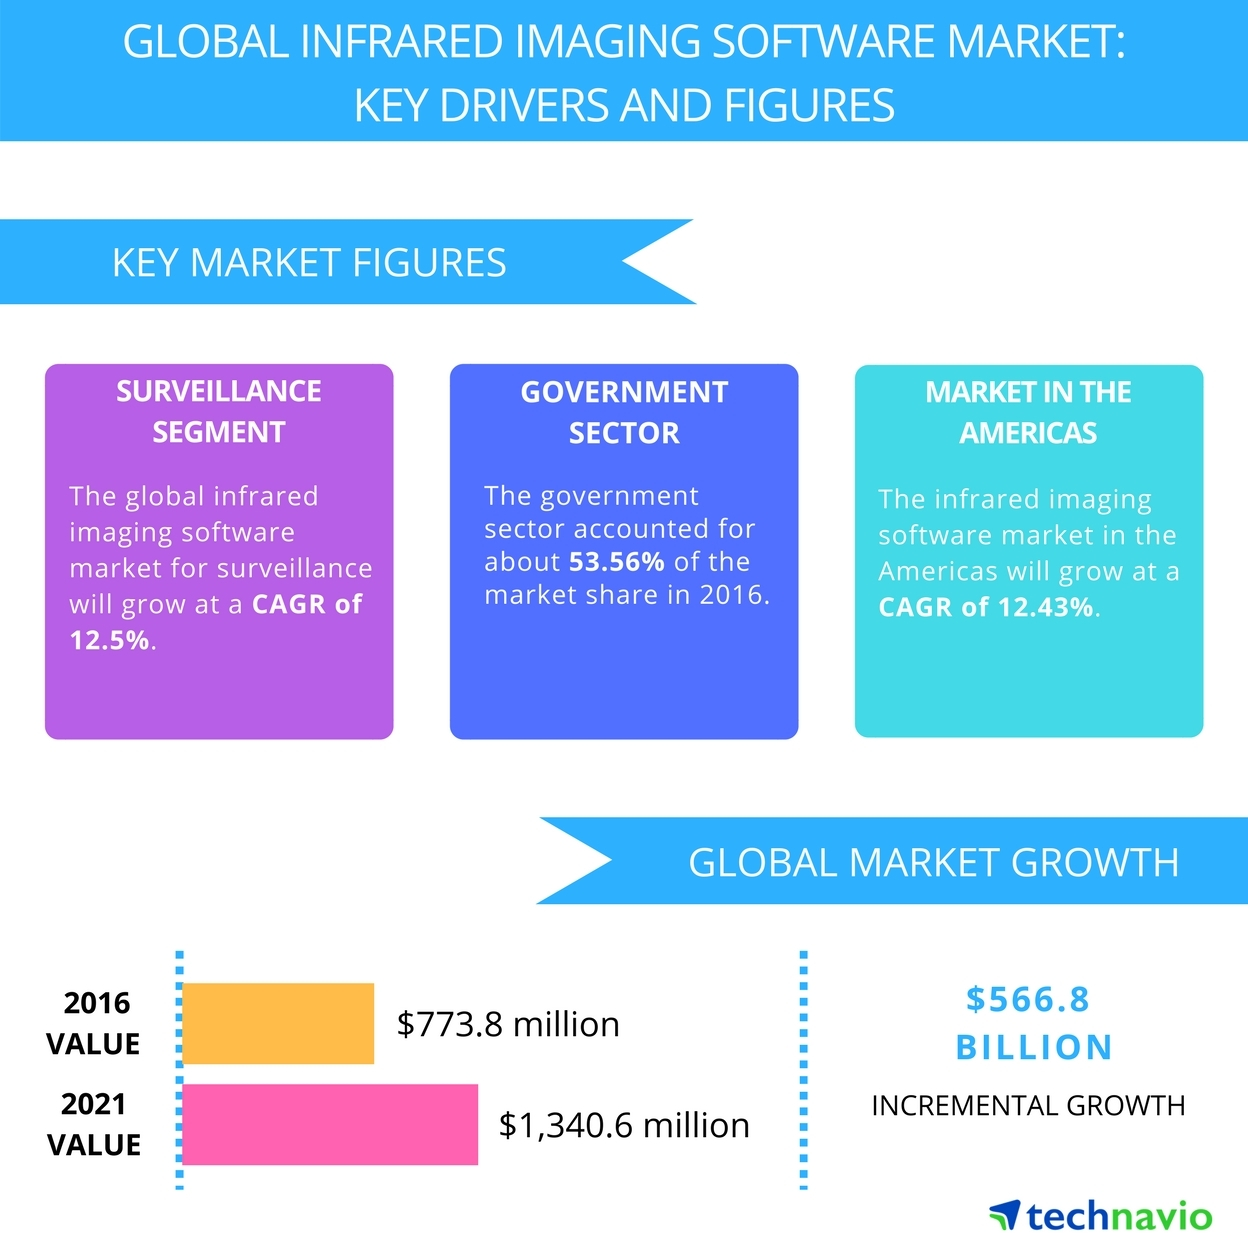 Technavio has published a new report on the global infrared imaging software market from 2017-2021. (Graphic: Business Wire)